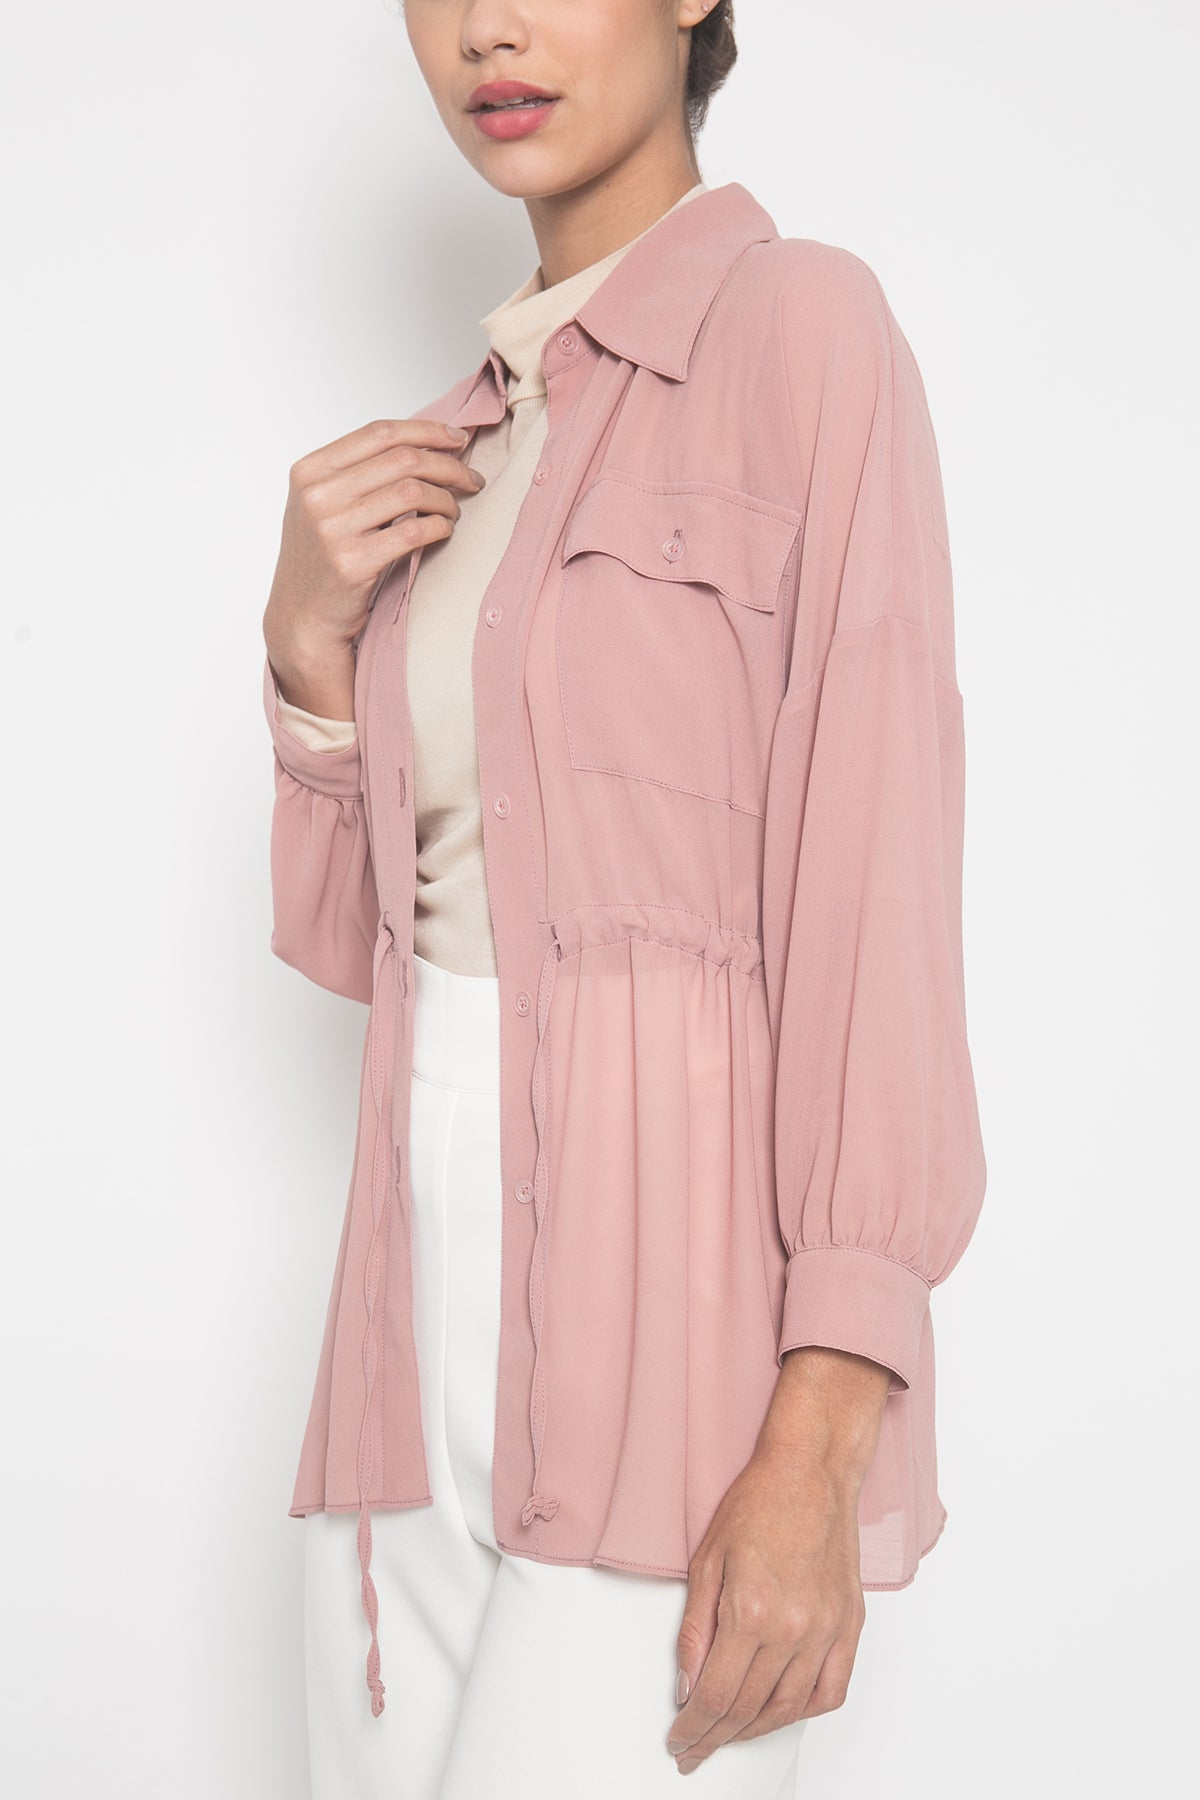 Sheer Shirt in Dusty Pink